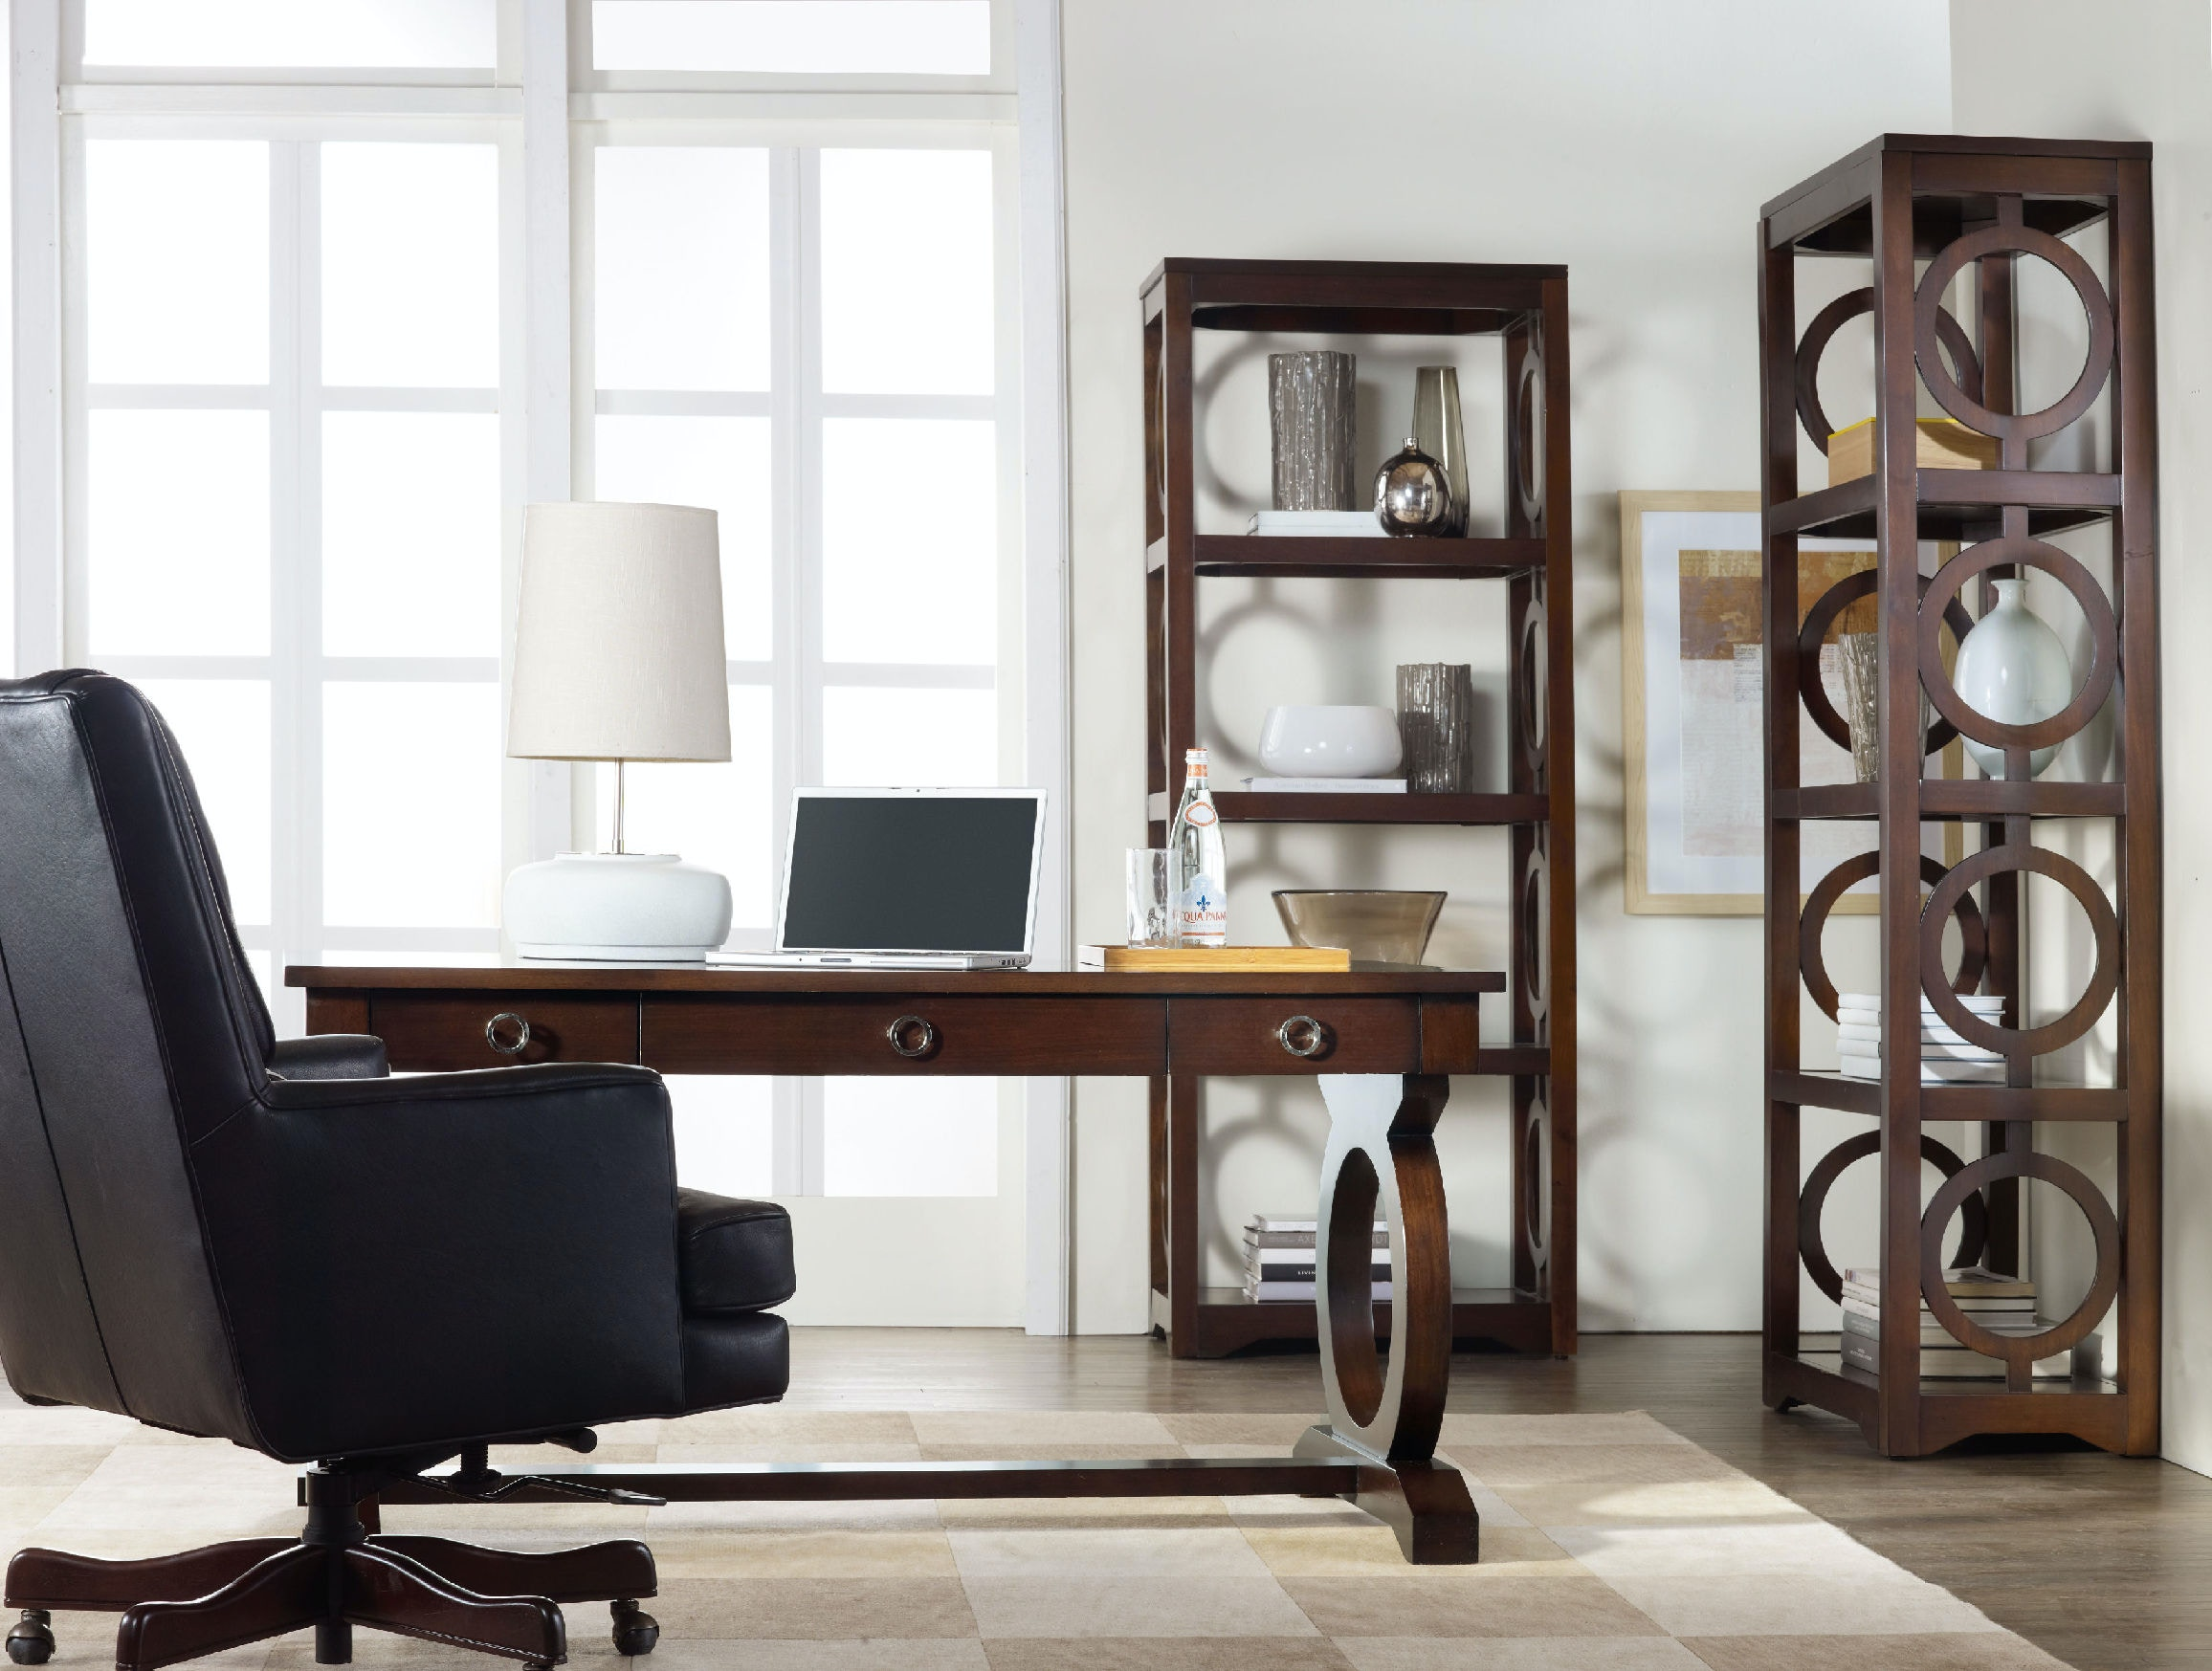 Hooker furniture home office kinsey etagere 5066 10443 hooker furniture kinsey etagere 5066 10443 solutioingenieria Image collections